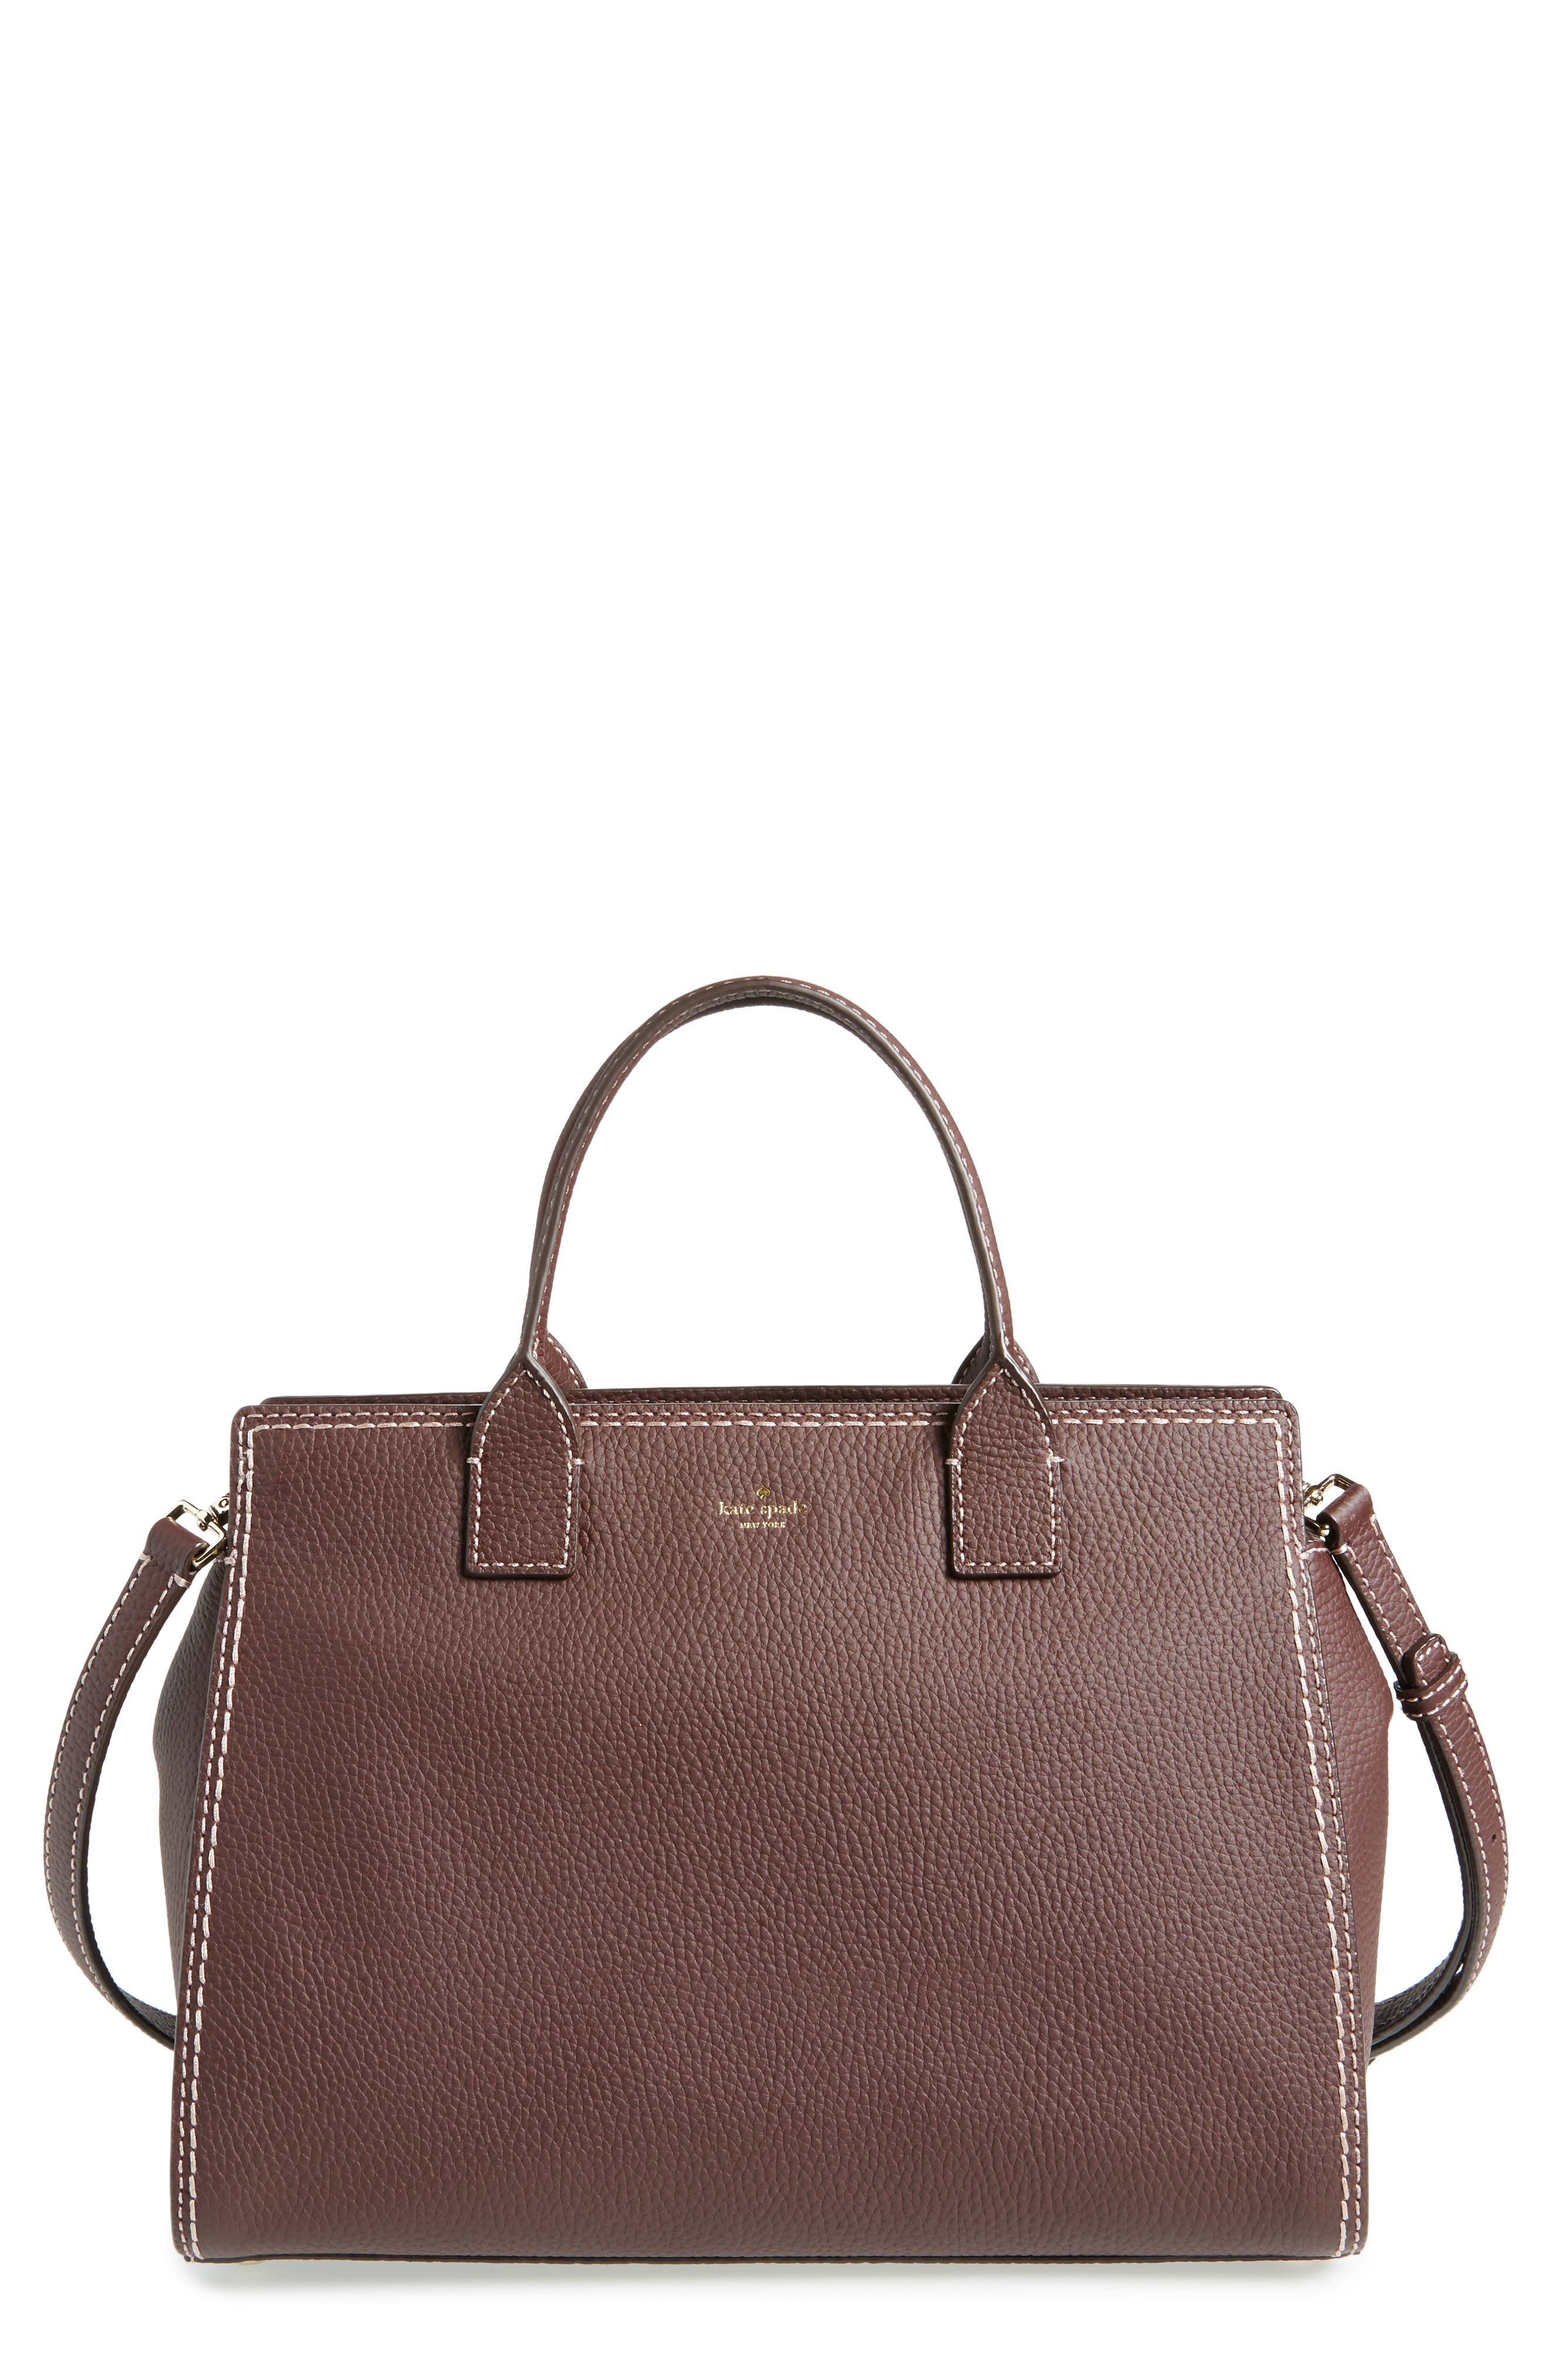 kate spade new york dunne lane lake leather satchel | Nordstrom